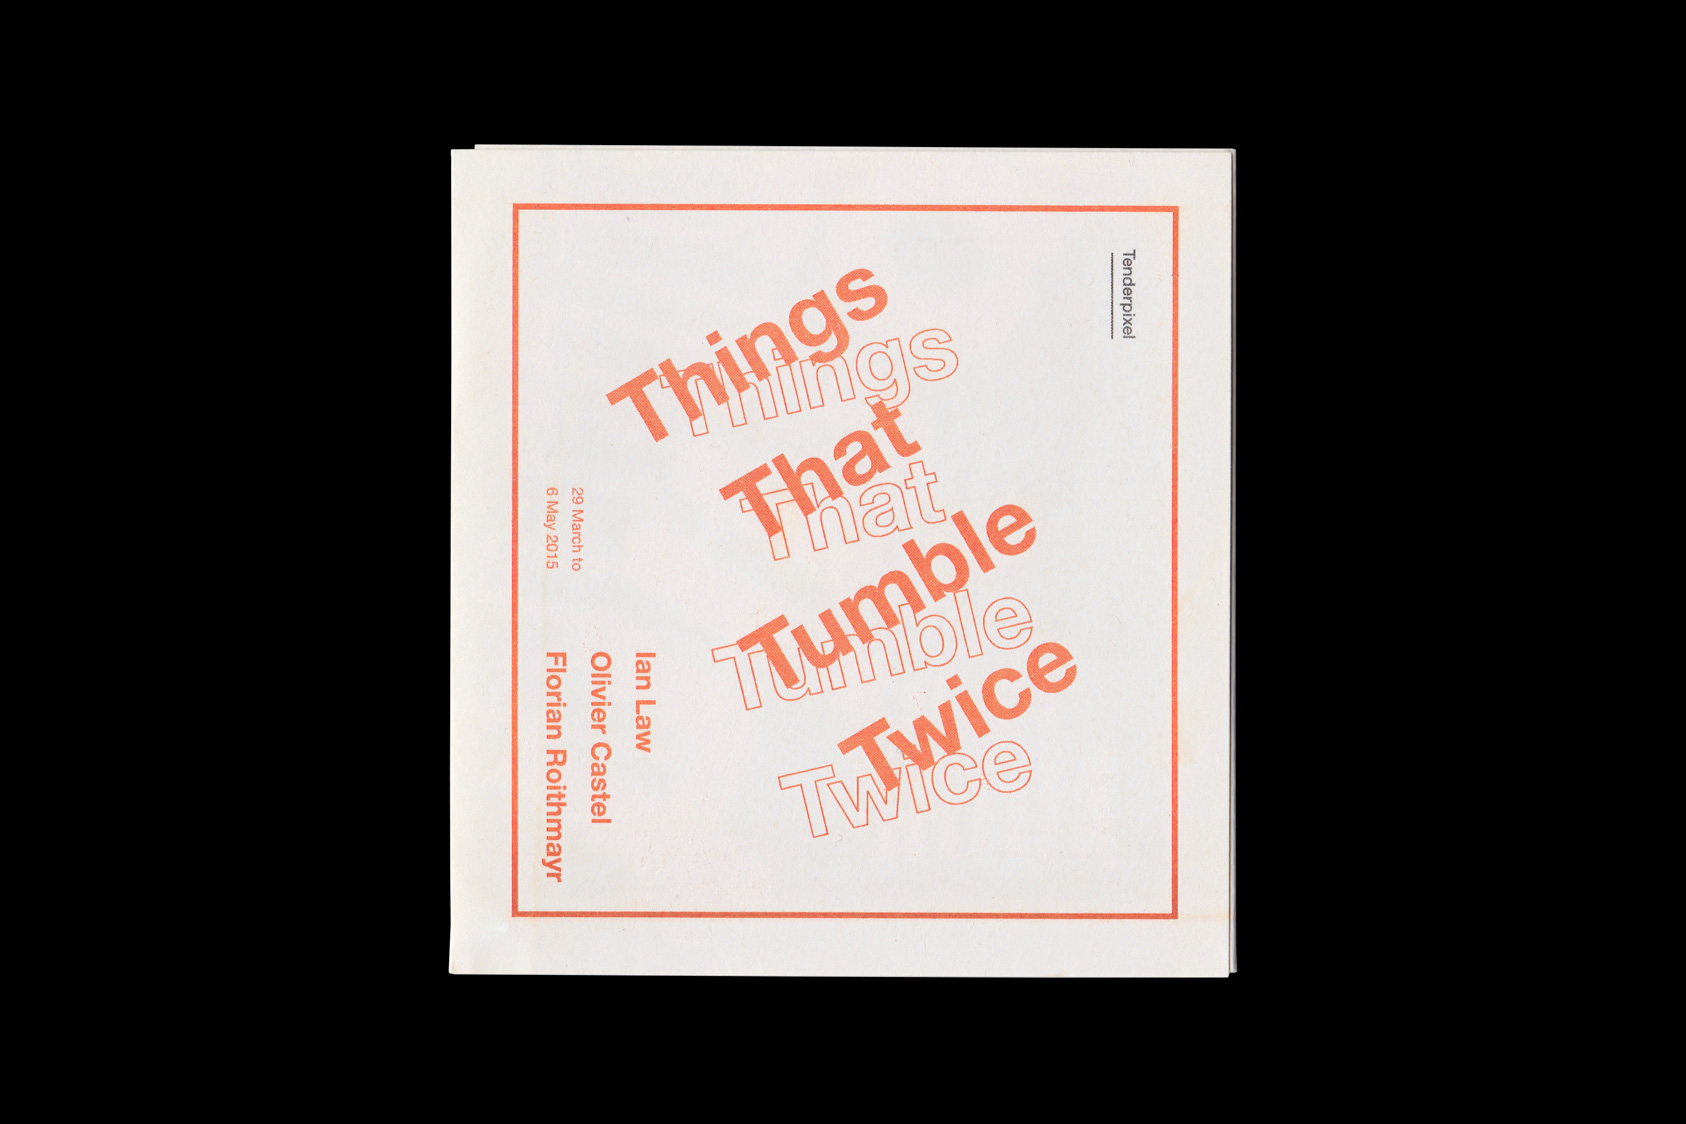 Things that tumble twice  by the agency for emerging ideas